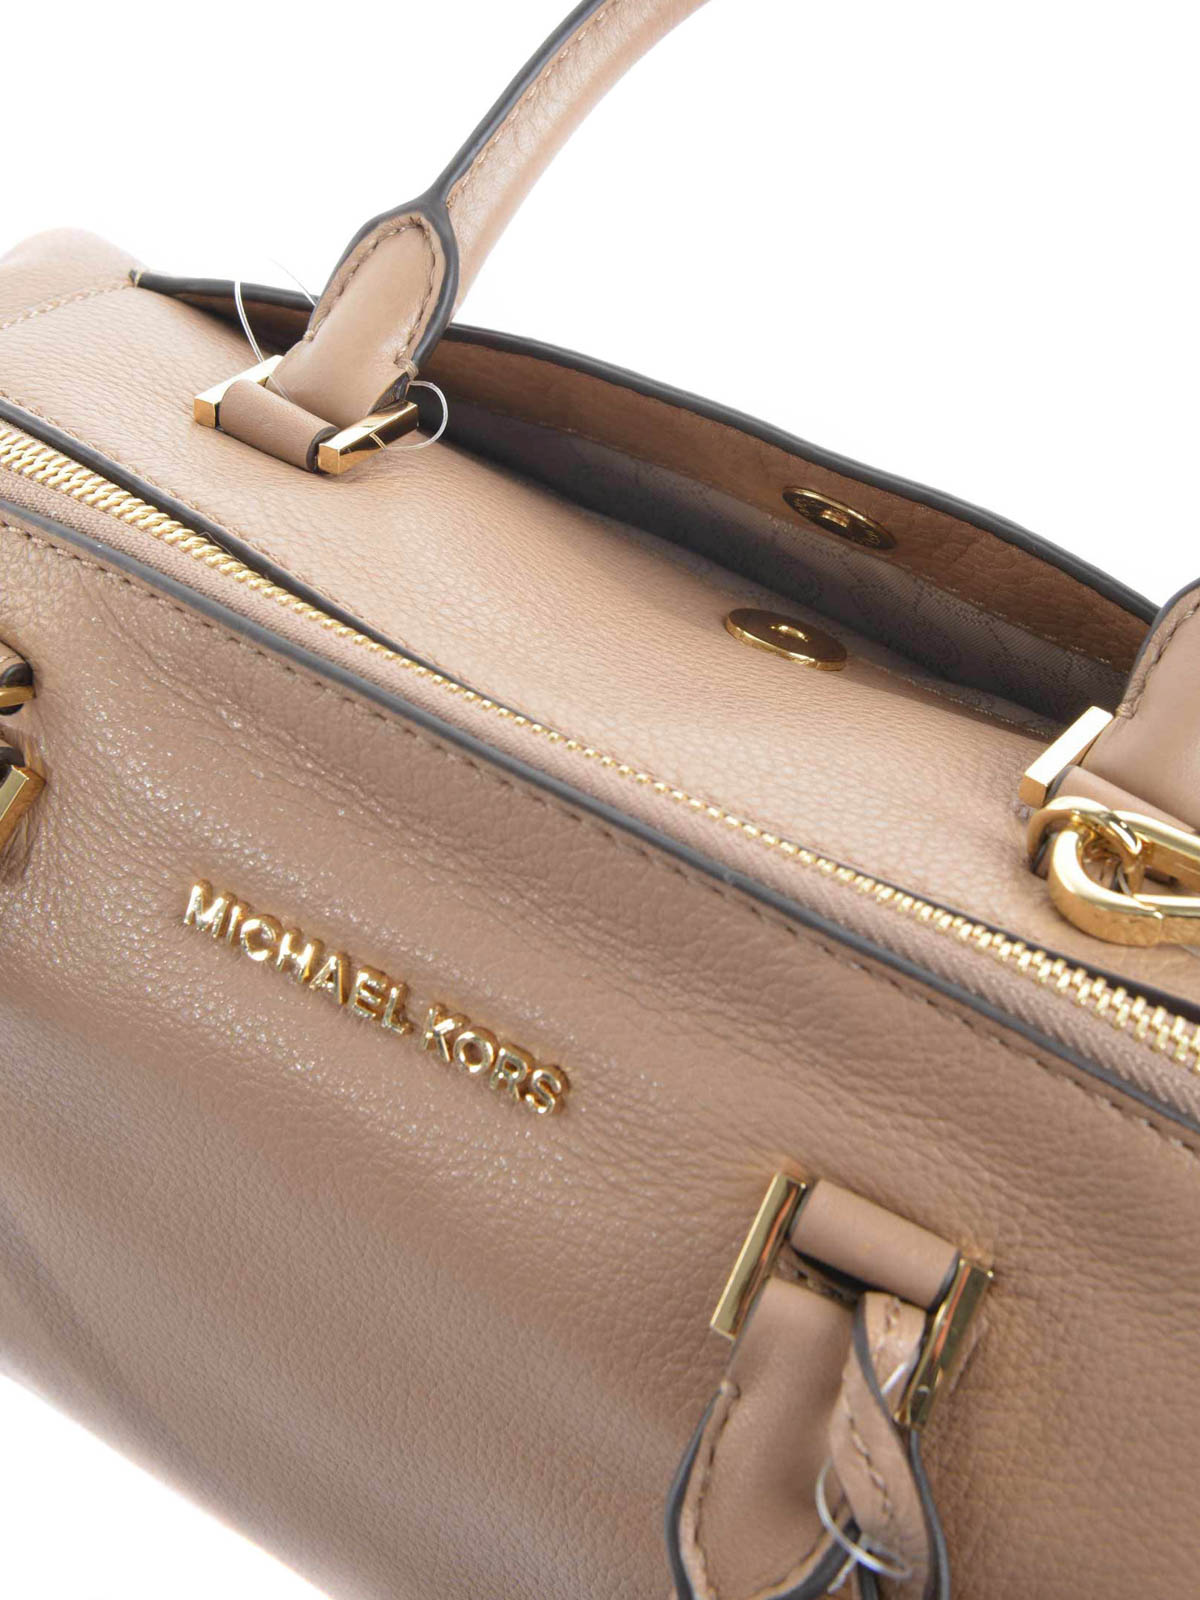 Michael kors factory outlet online shopping